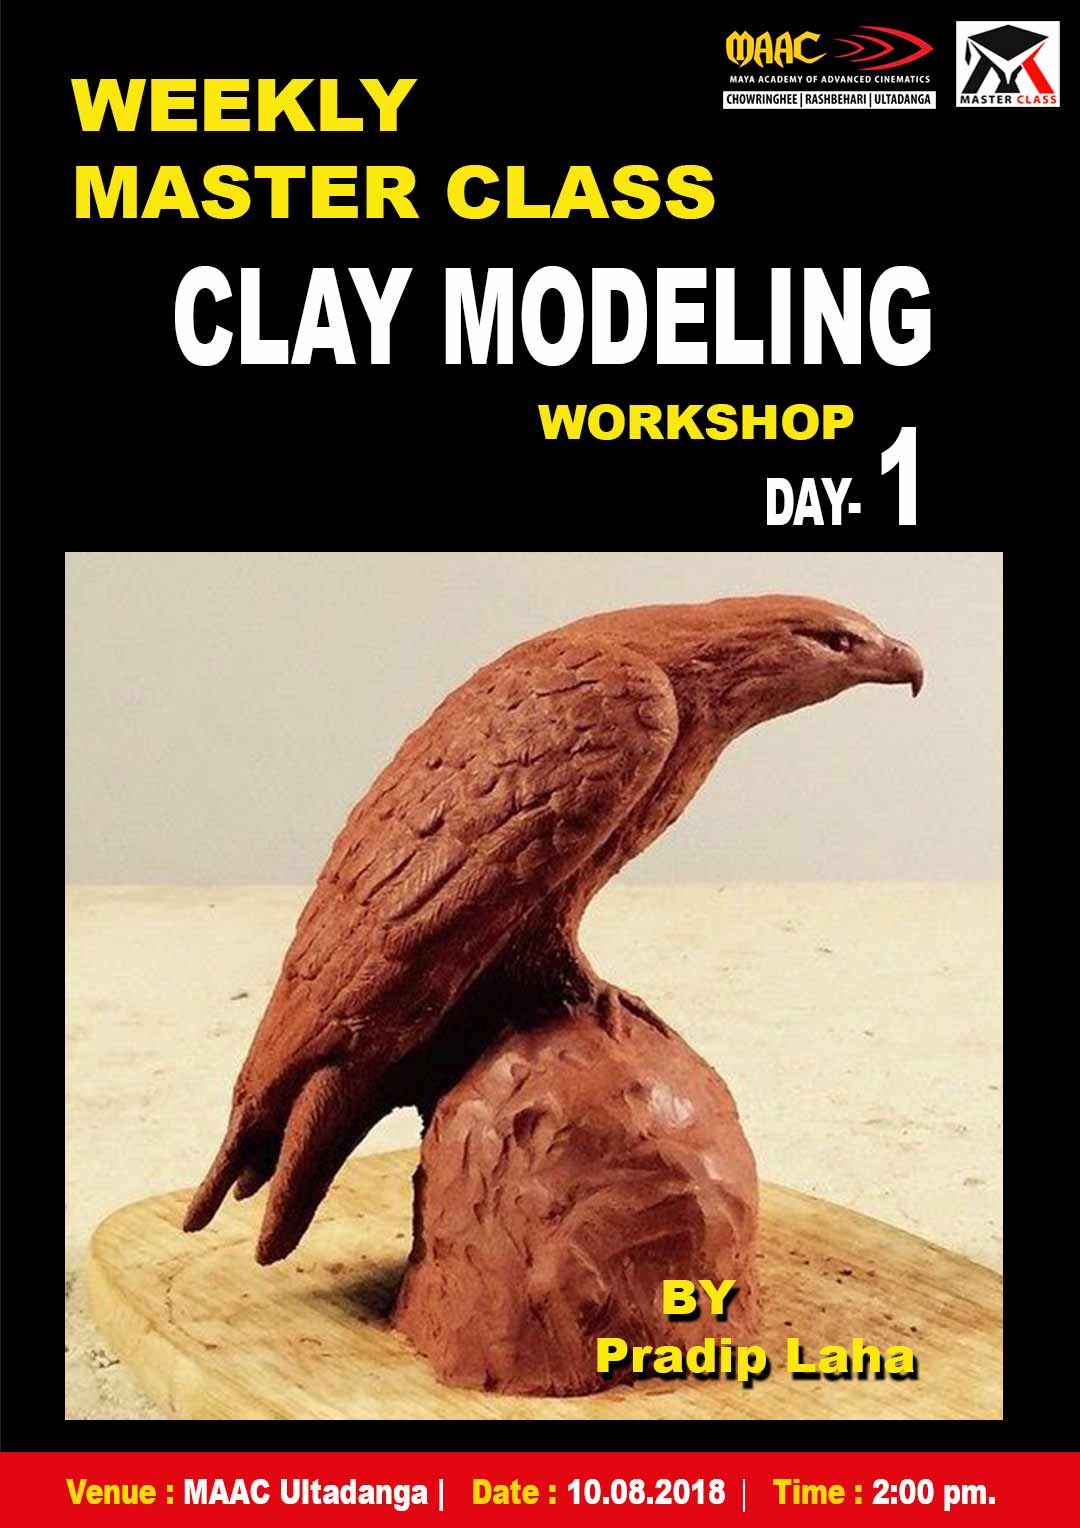 Weekly Master Class on Clay Modeling